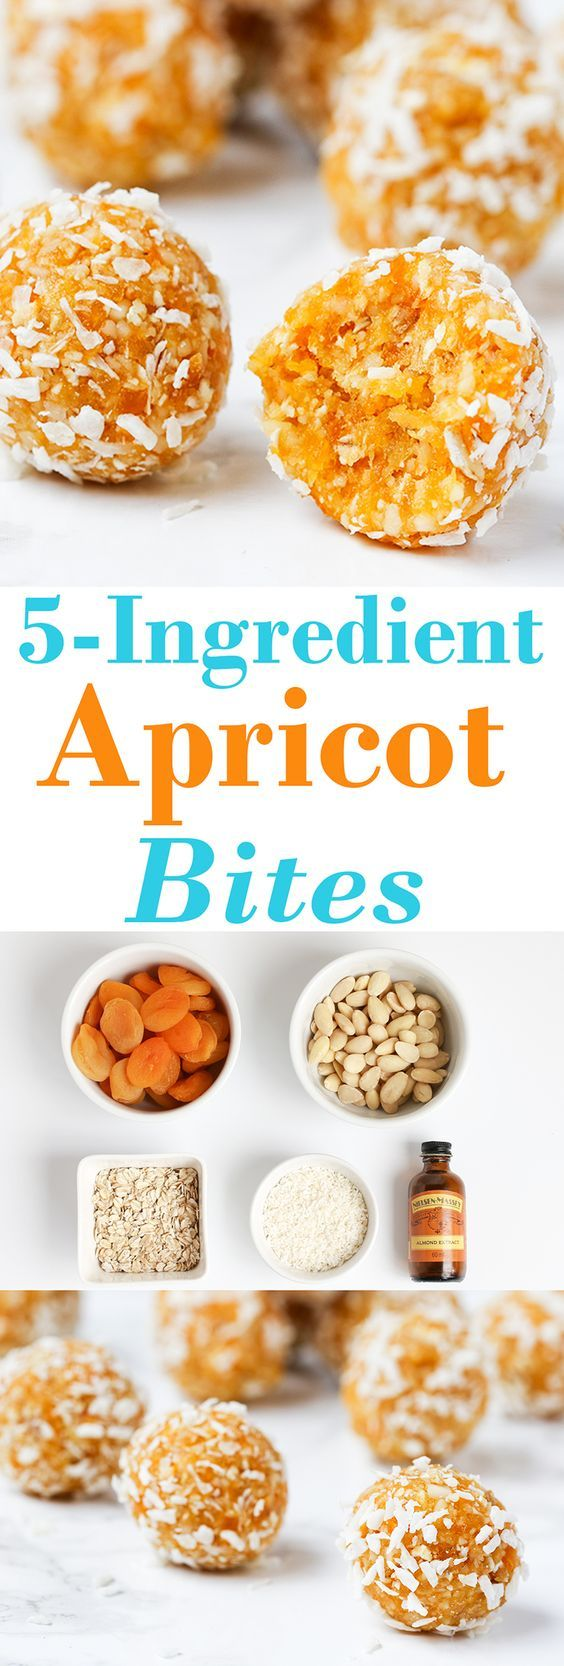 Gluten-Free 5-Ingredient Apricot Bites Recipe